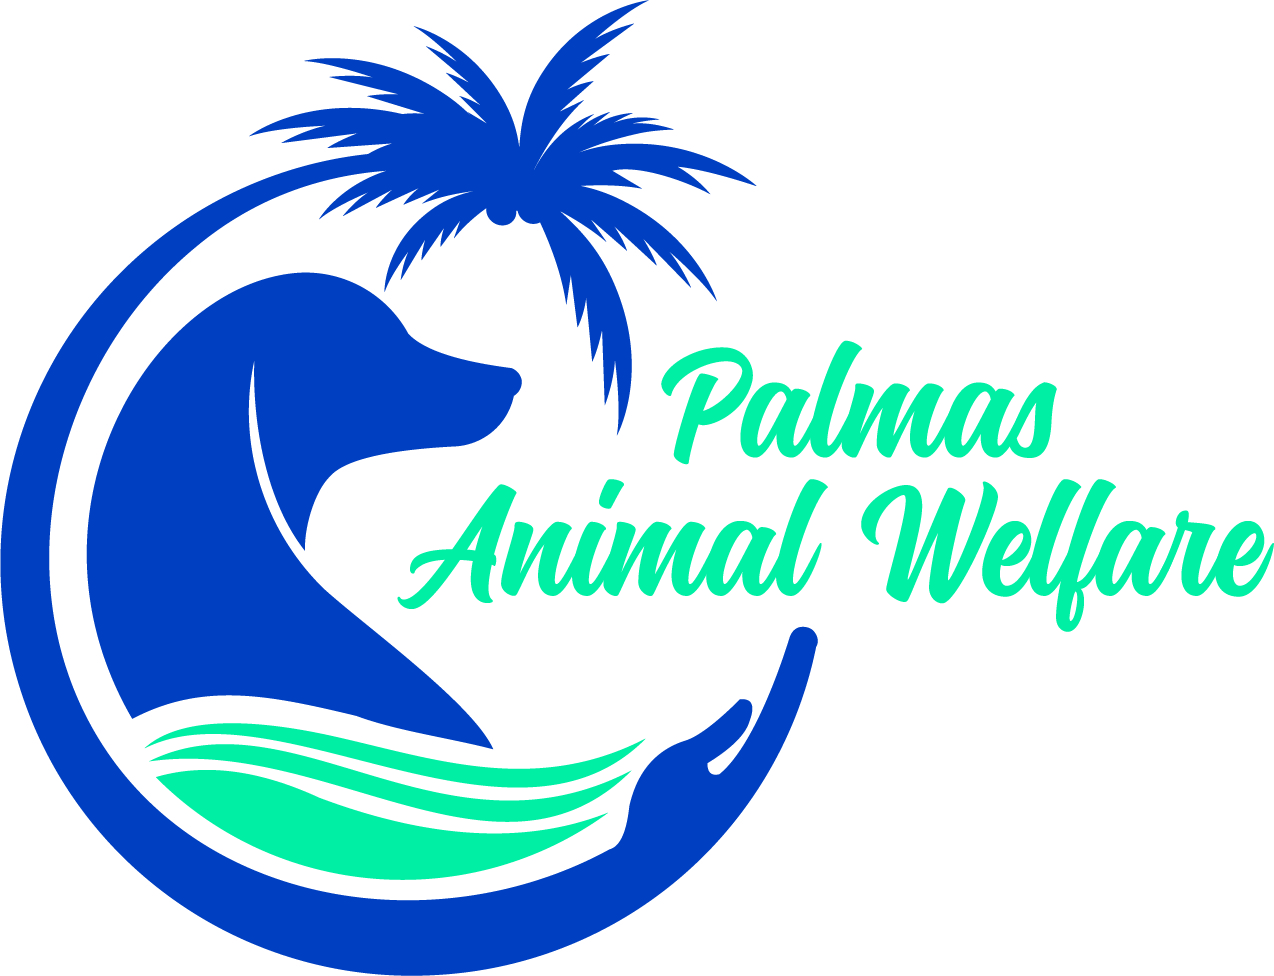 Palmas Animal Welfare logo